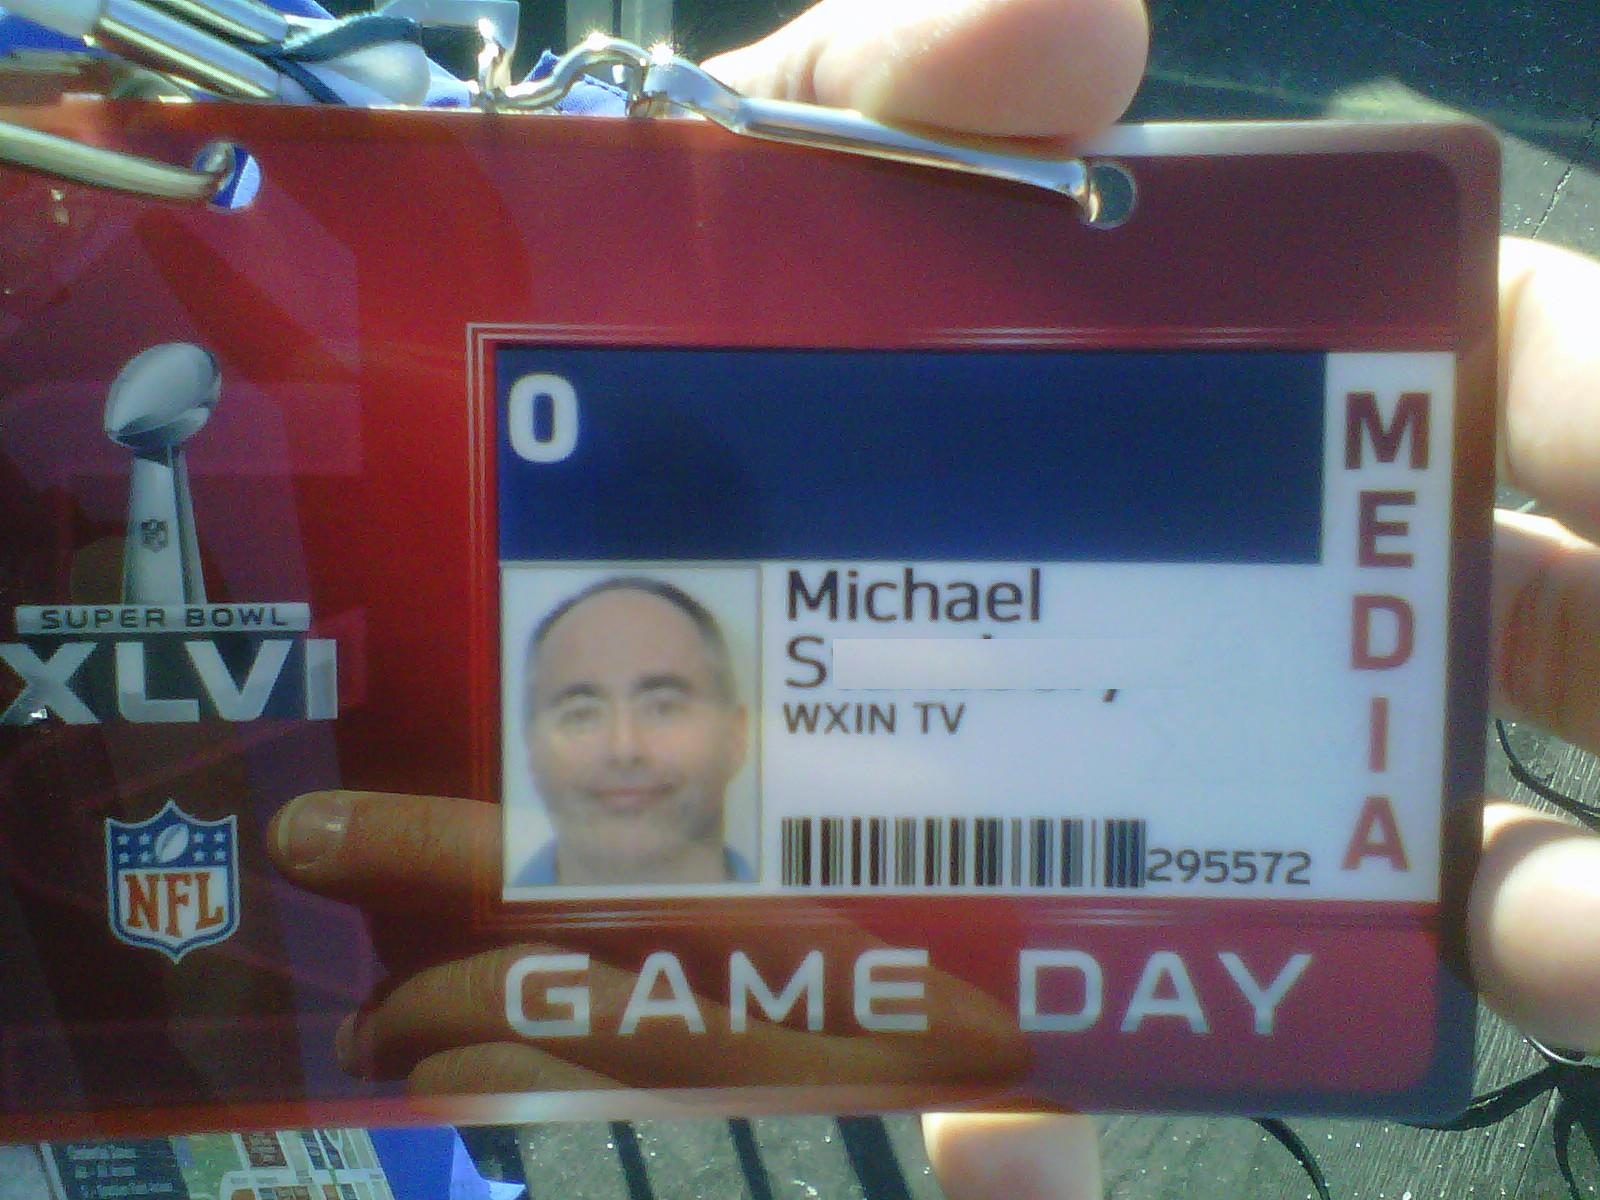 Working the Super Bowl in Broadcasting-copy-img00515-20120205-1513.jpg